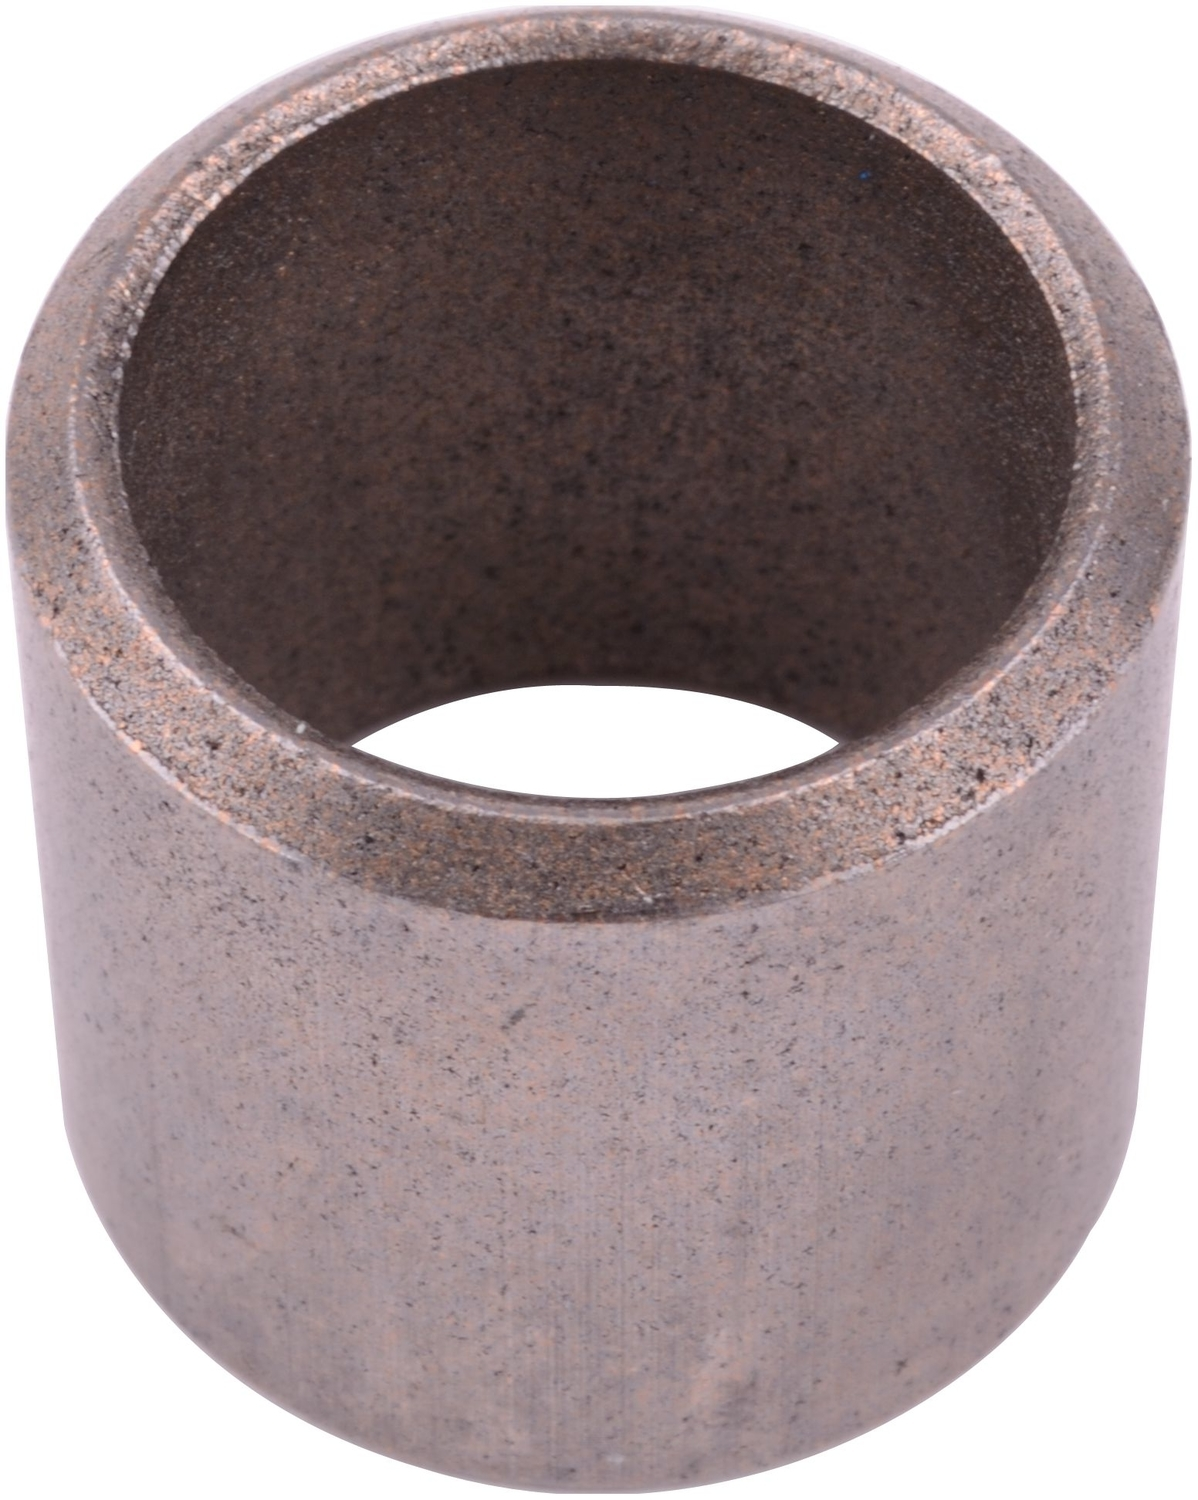 SKF (CHICAGO RAWHIDE) - Clutch Pilot Bearing - SKF B286